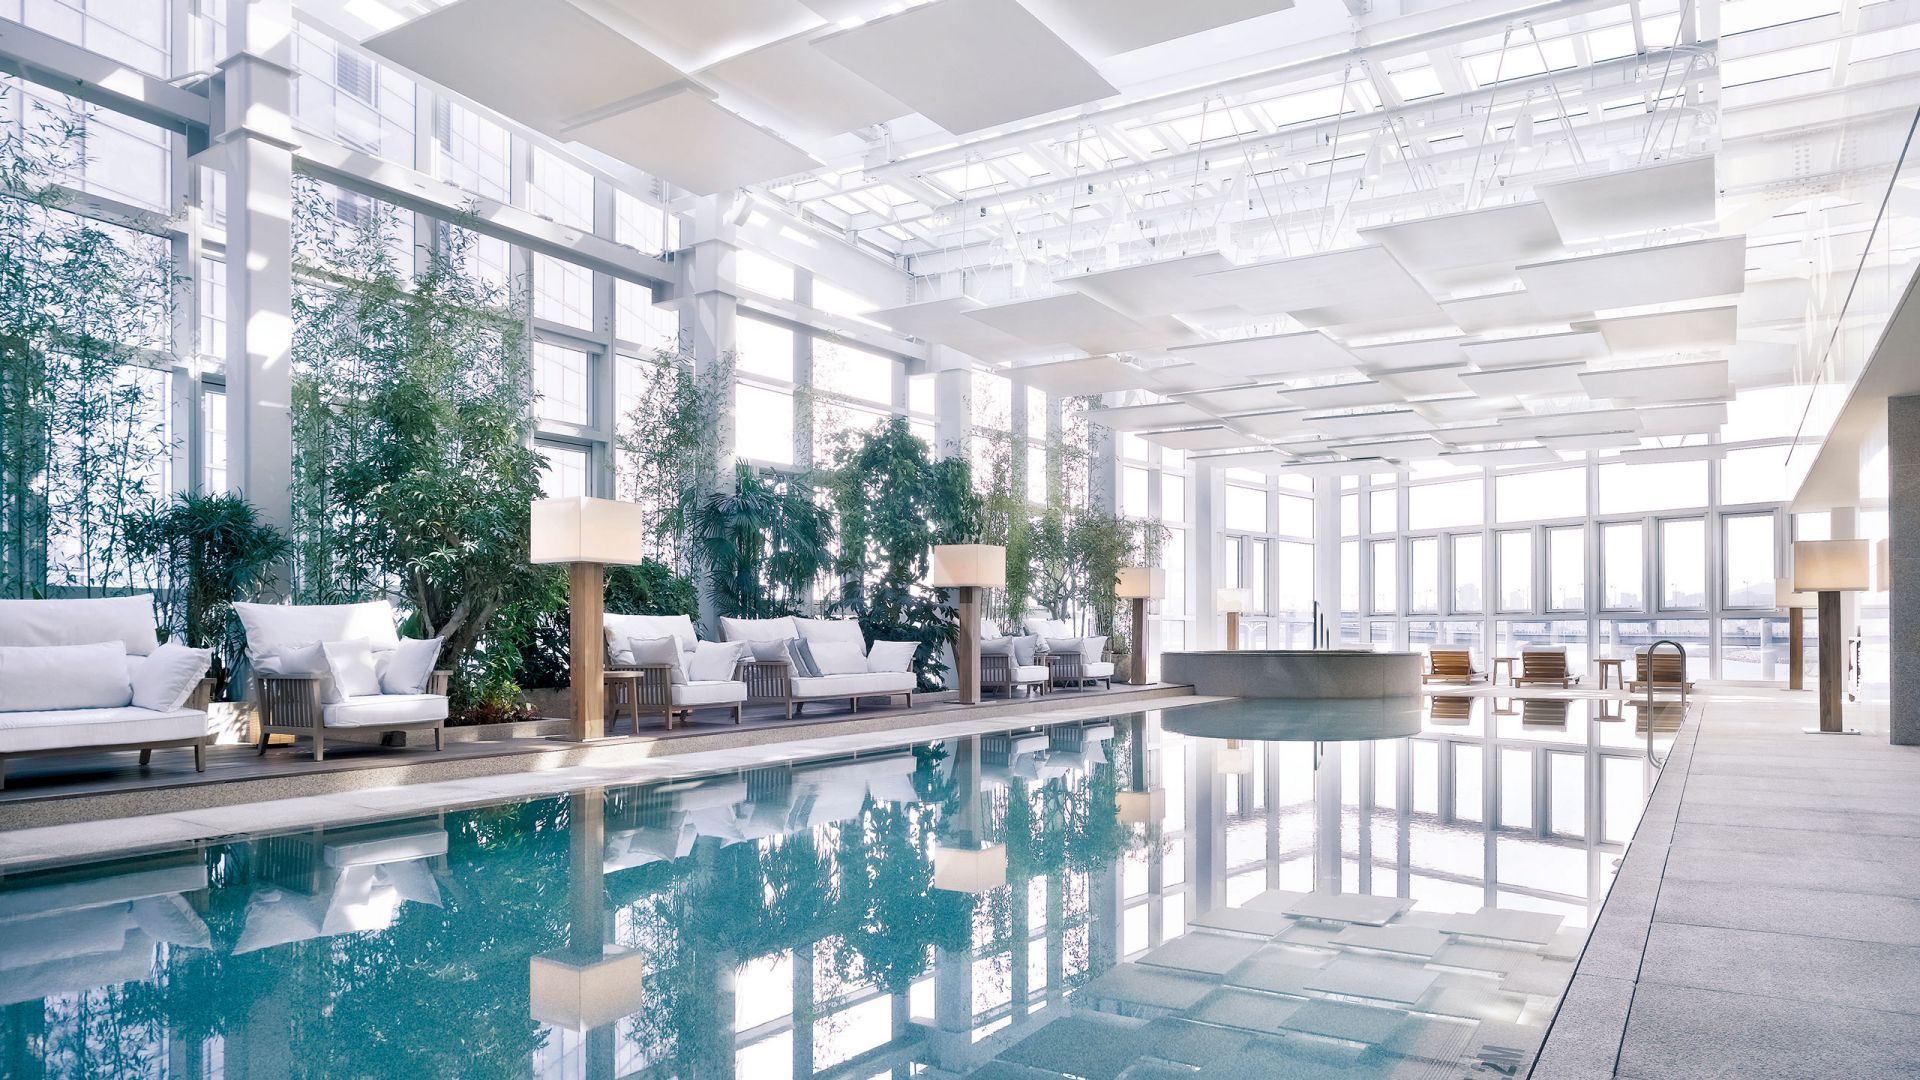 Indoor hotel pool, day time sunlight